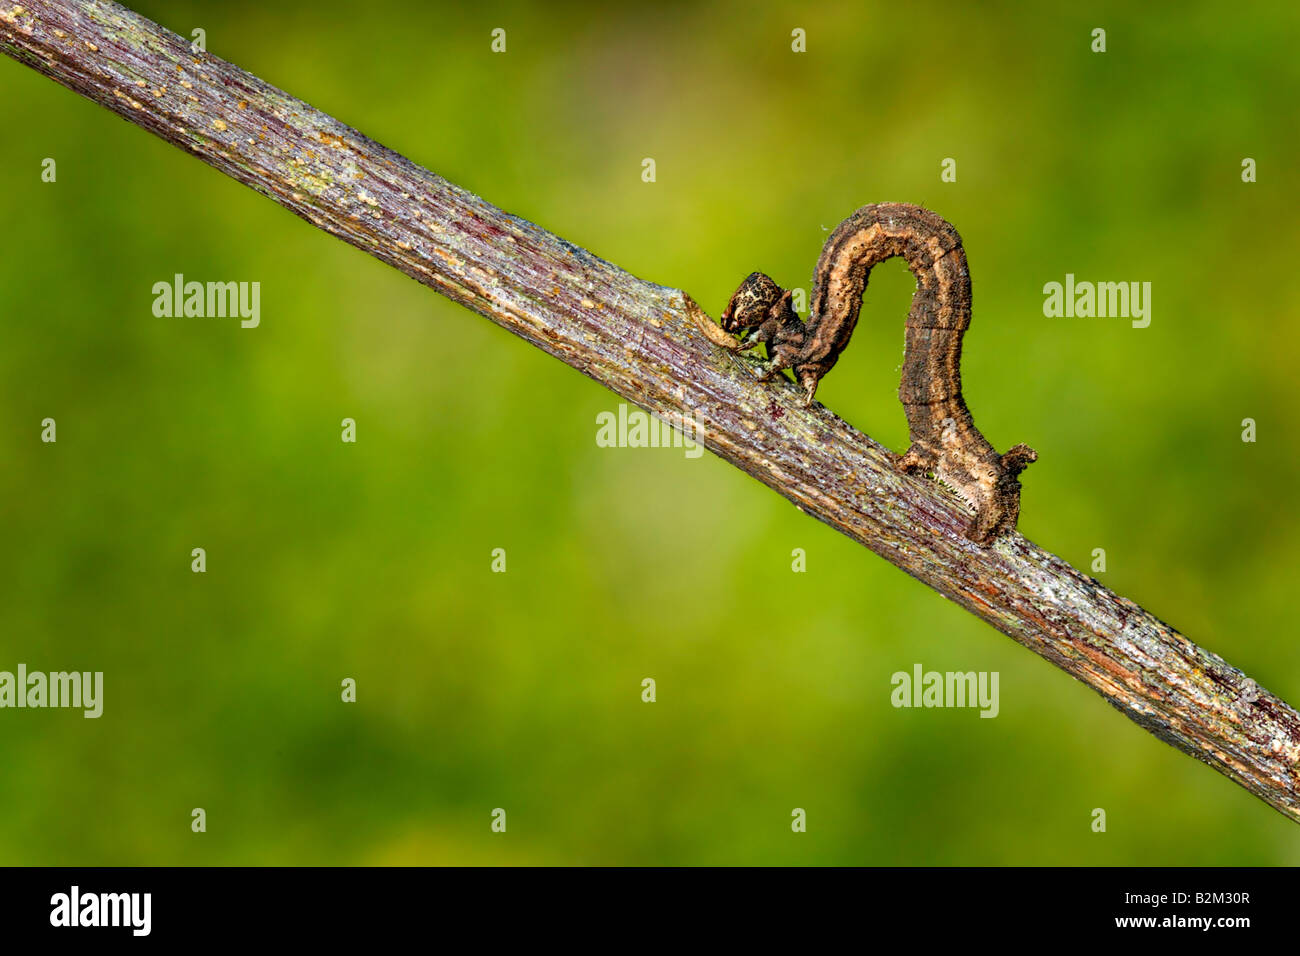 caterpillar, acherontia, larva, atropos, animal, butterfly, insect, insects, animal, bug, lepidopteran, ugly, going - Stock Image